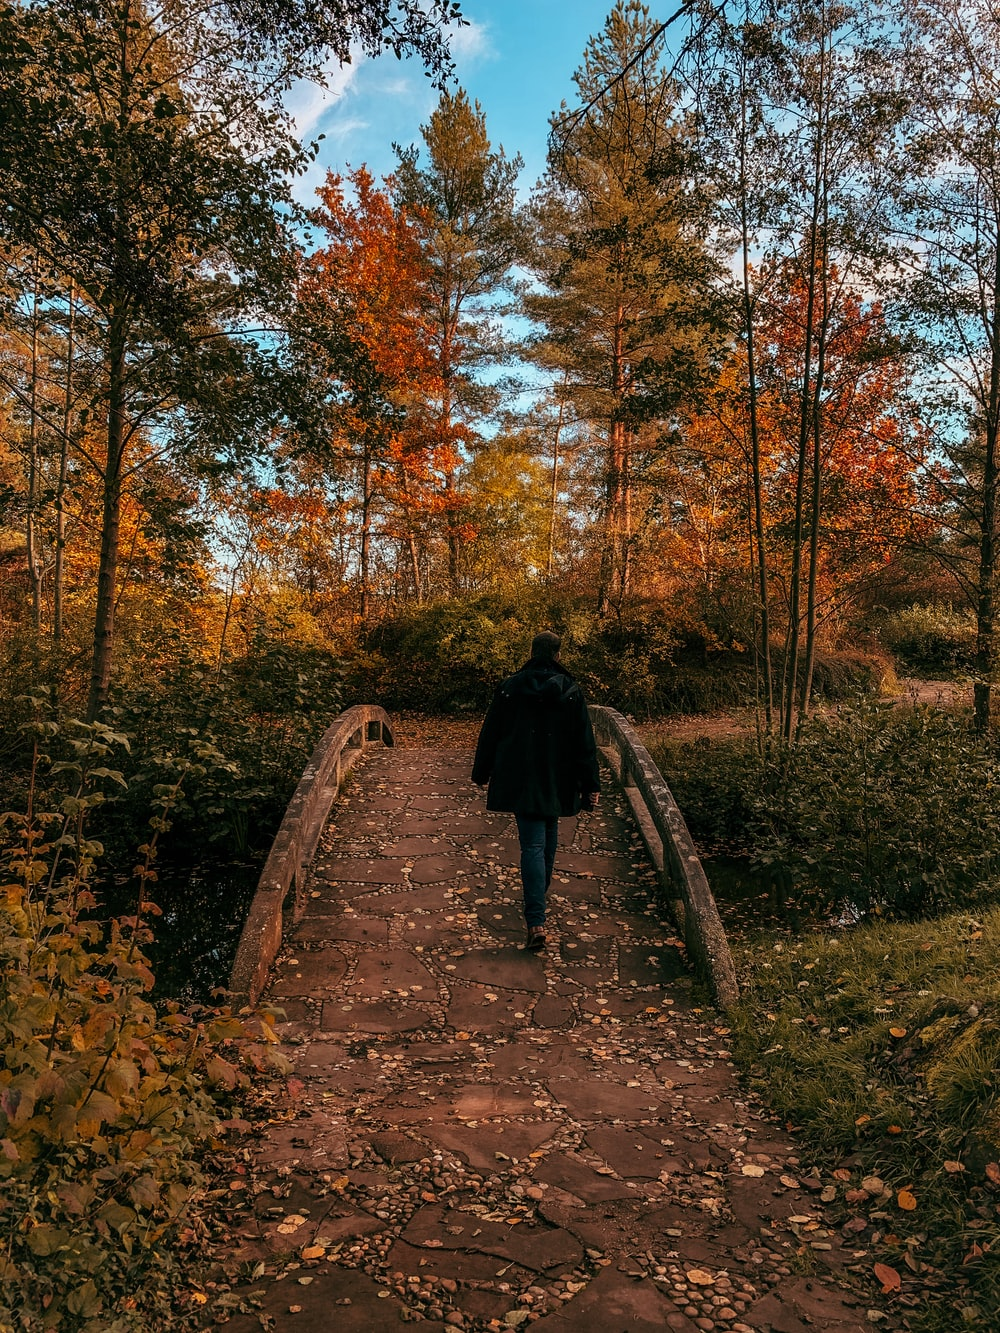 person in black coat walking on brown pathway surrounded by trees during daytime